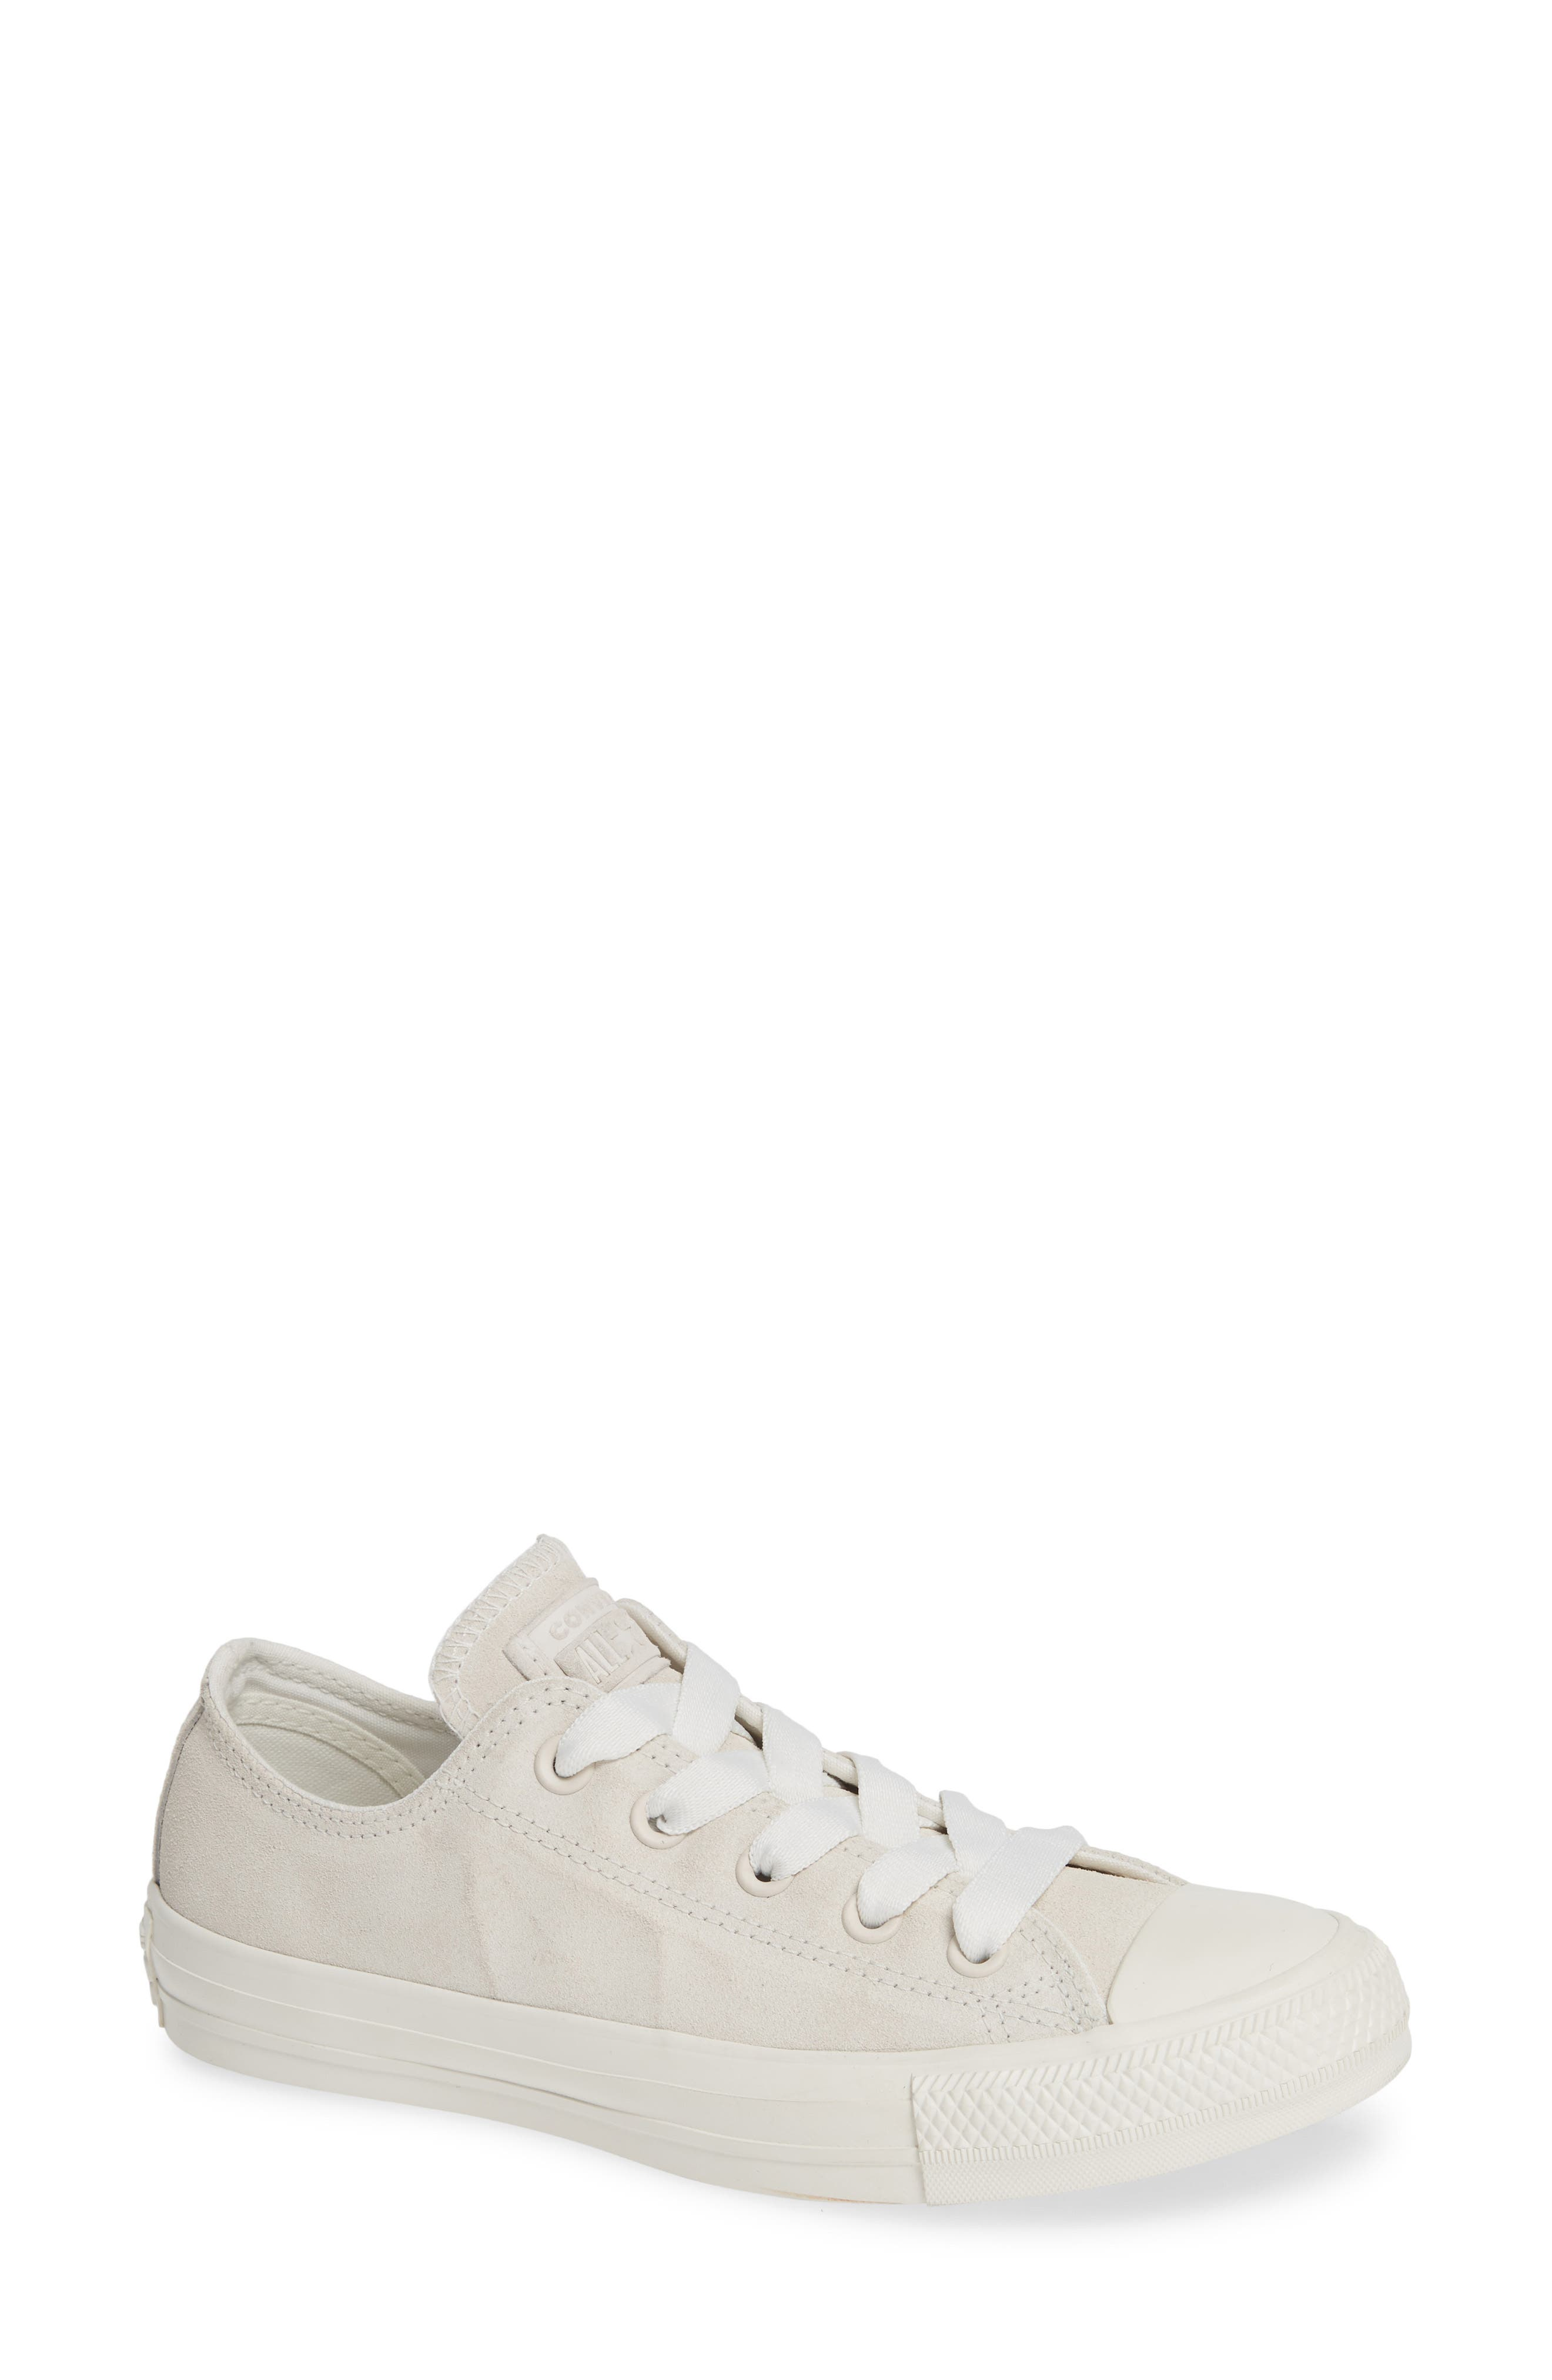 Chuck Taylor<sup>®</sup> All Star<sup>®</sup> Ox Sneaker,                         Main,                         color, VINTAGE WHITE SUEDE